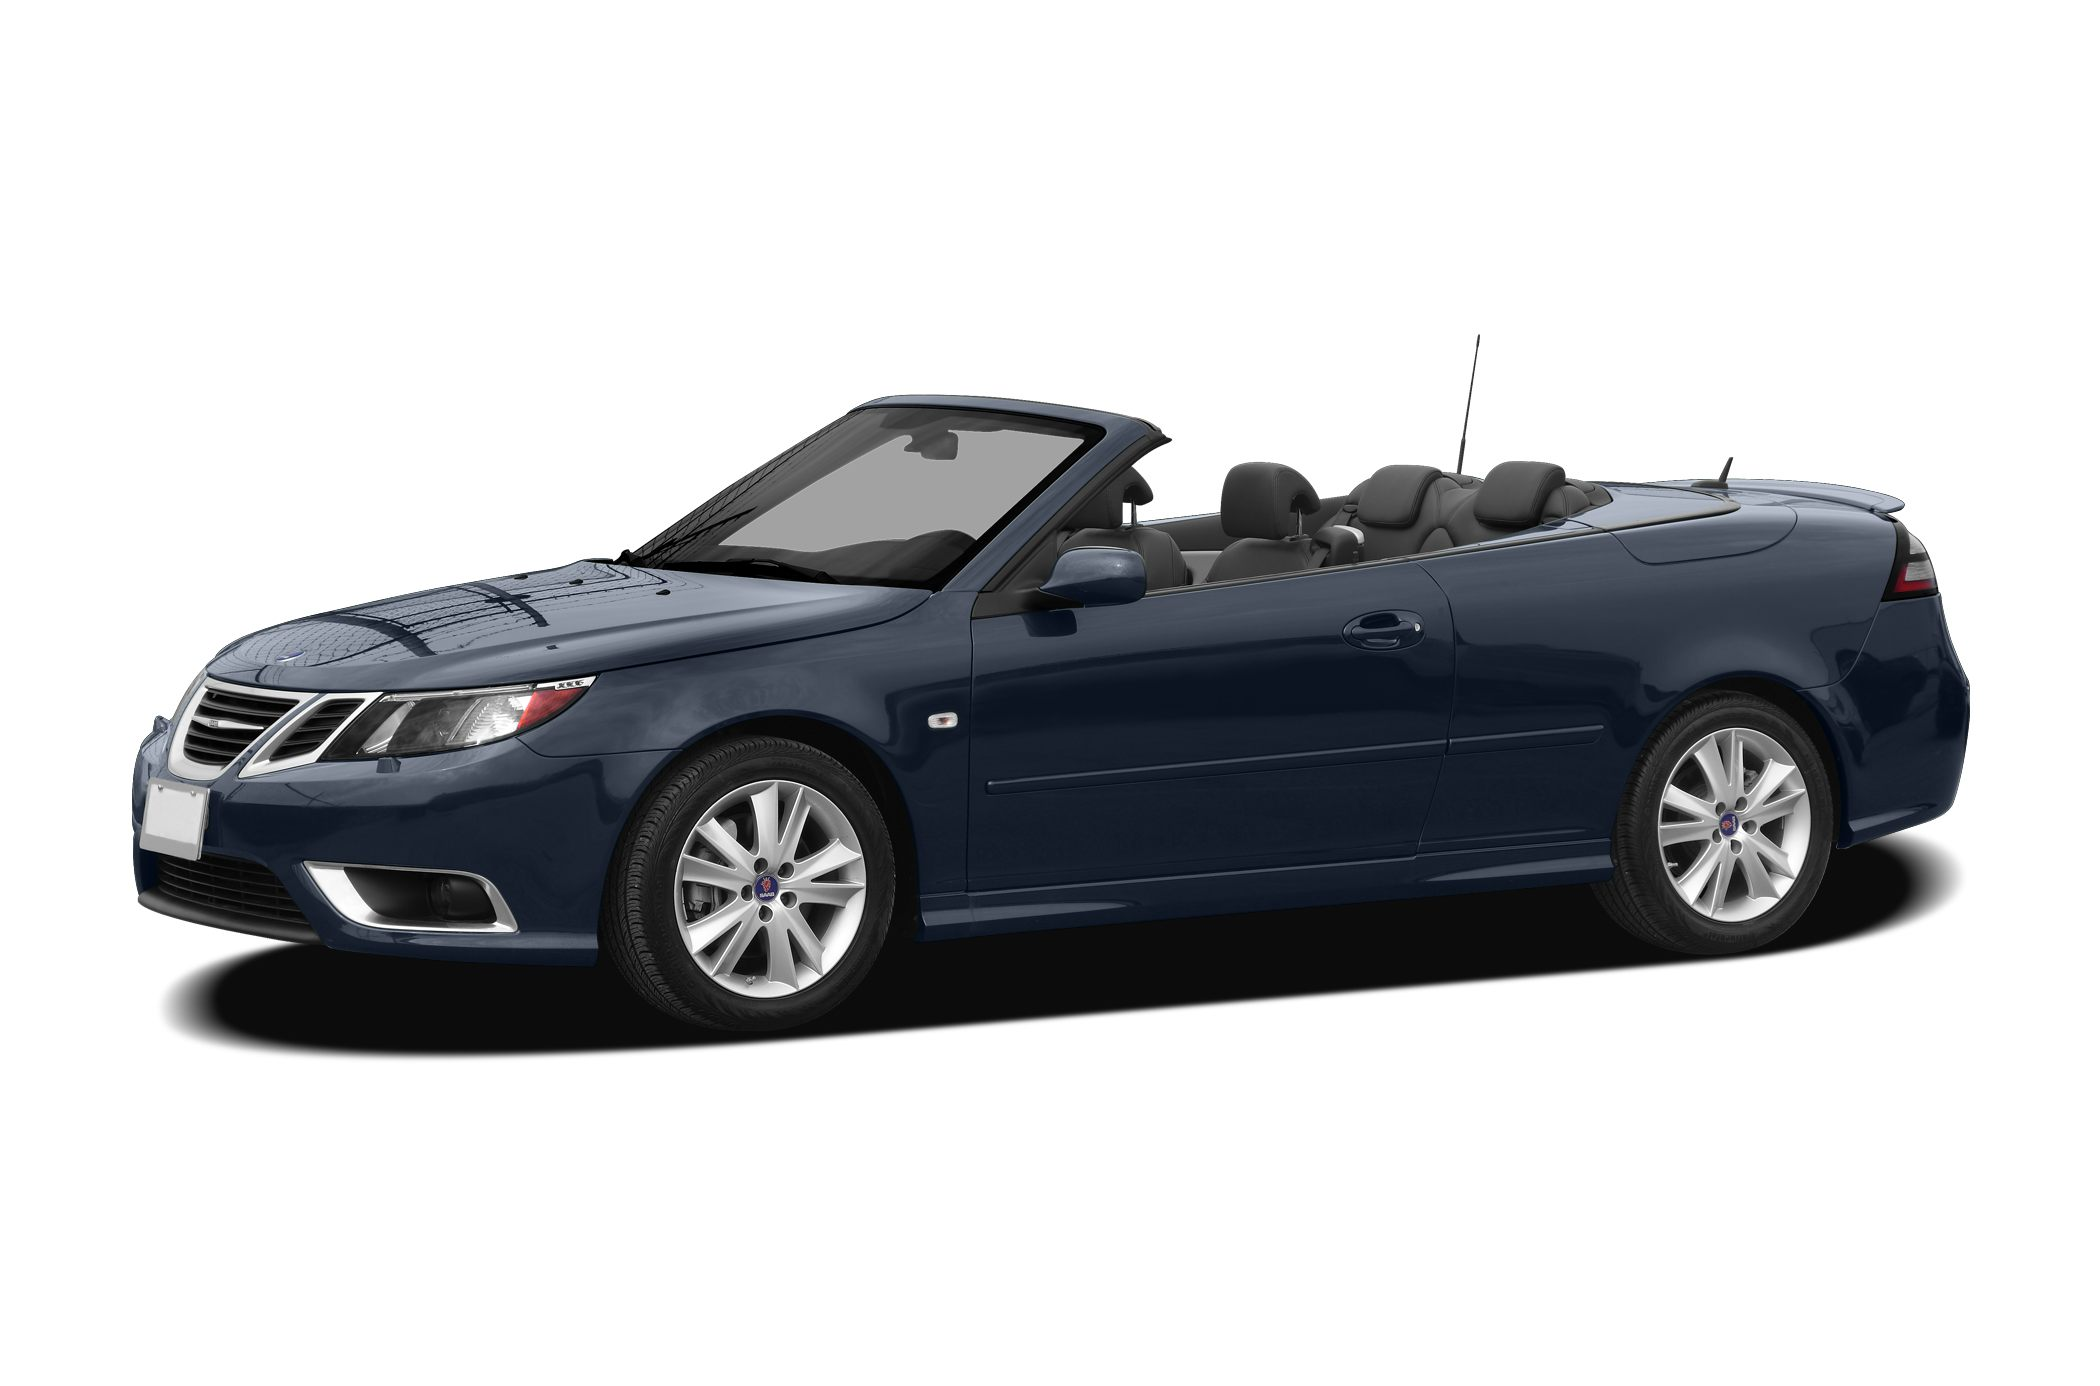 2008 Saab 9-3 Aero Sedan for sale in Detroit for $0 with 95,282 miles